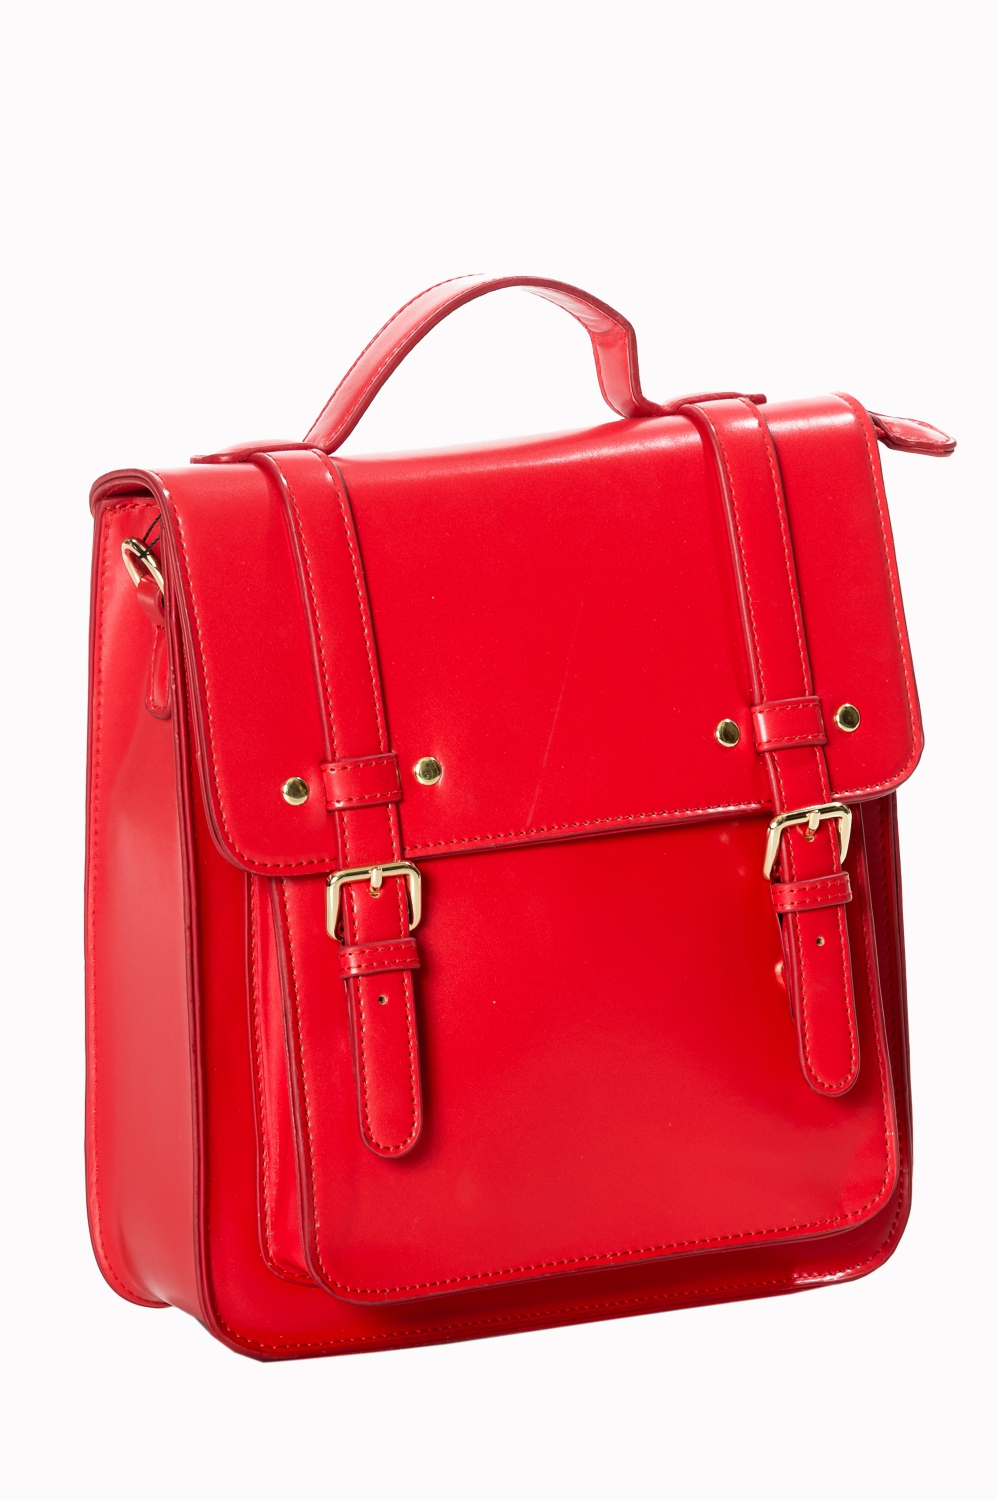 Banned Retro 60s Cohen Red Handbag